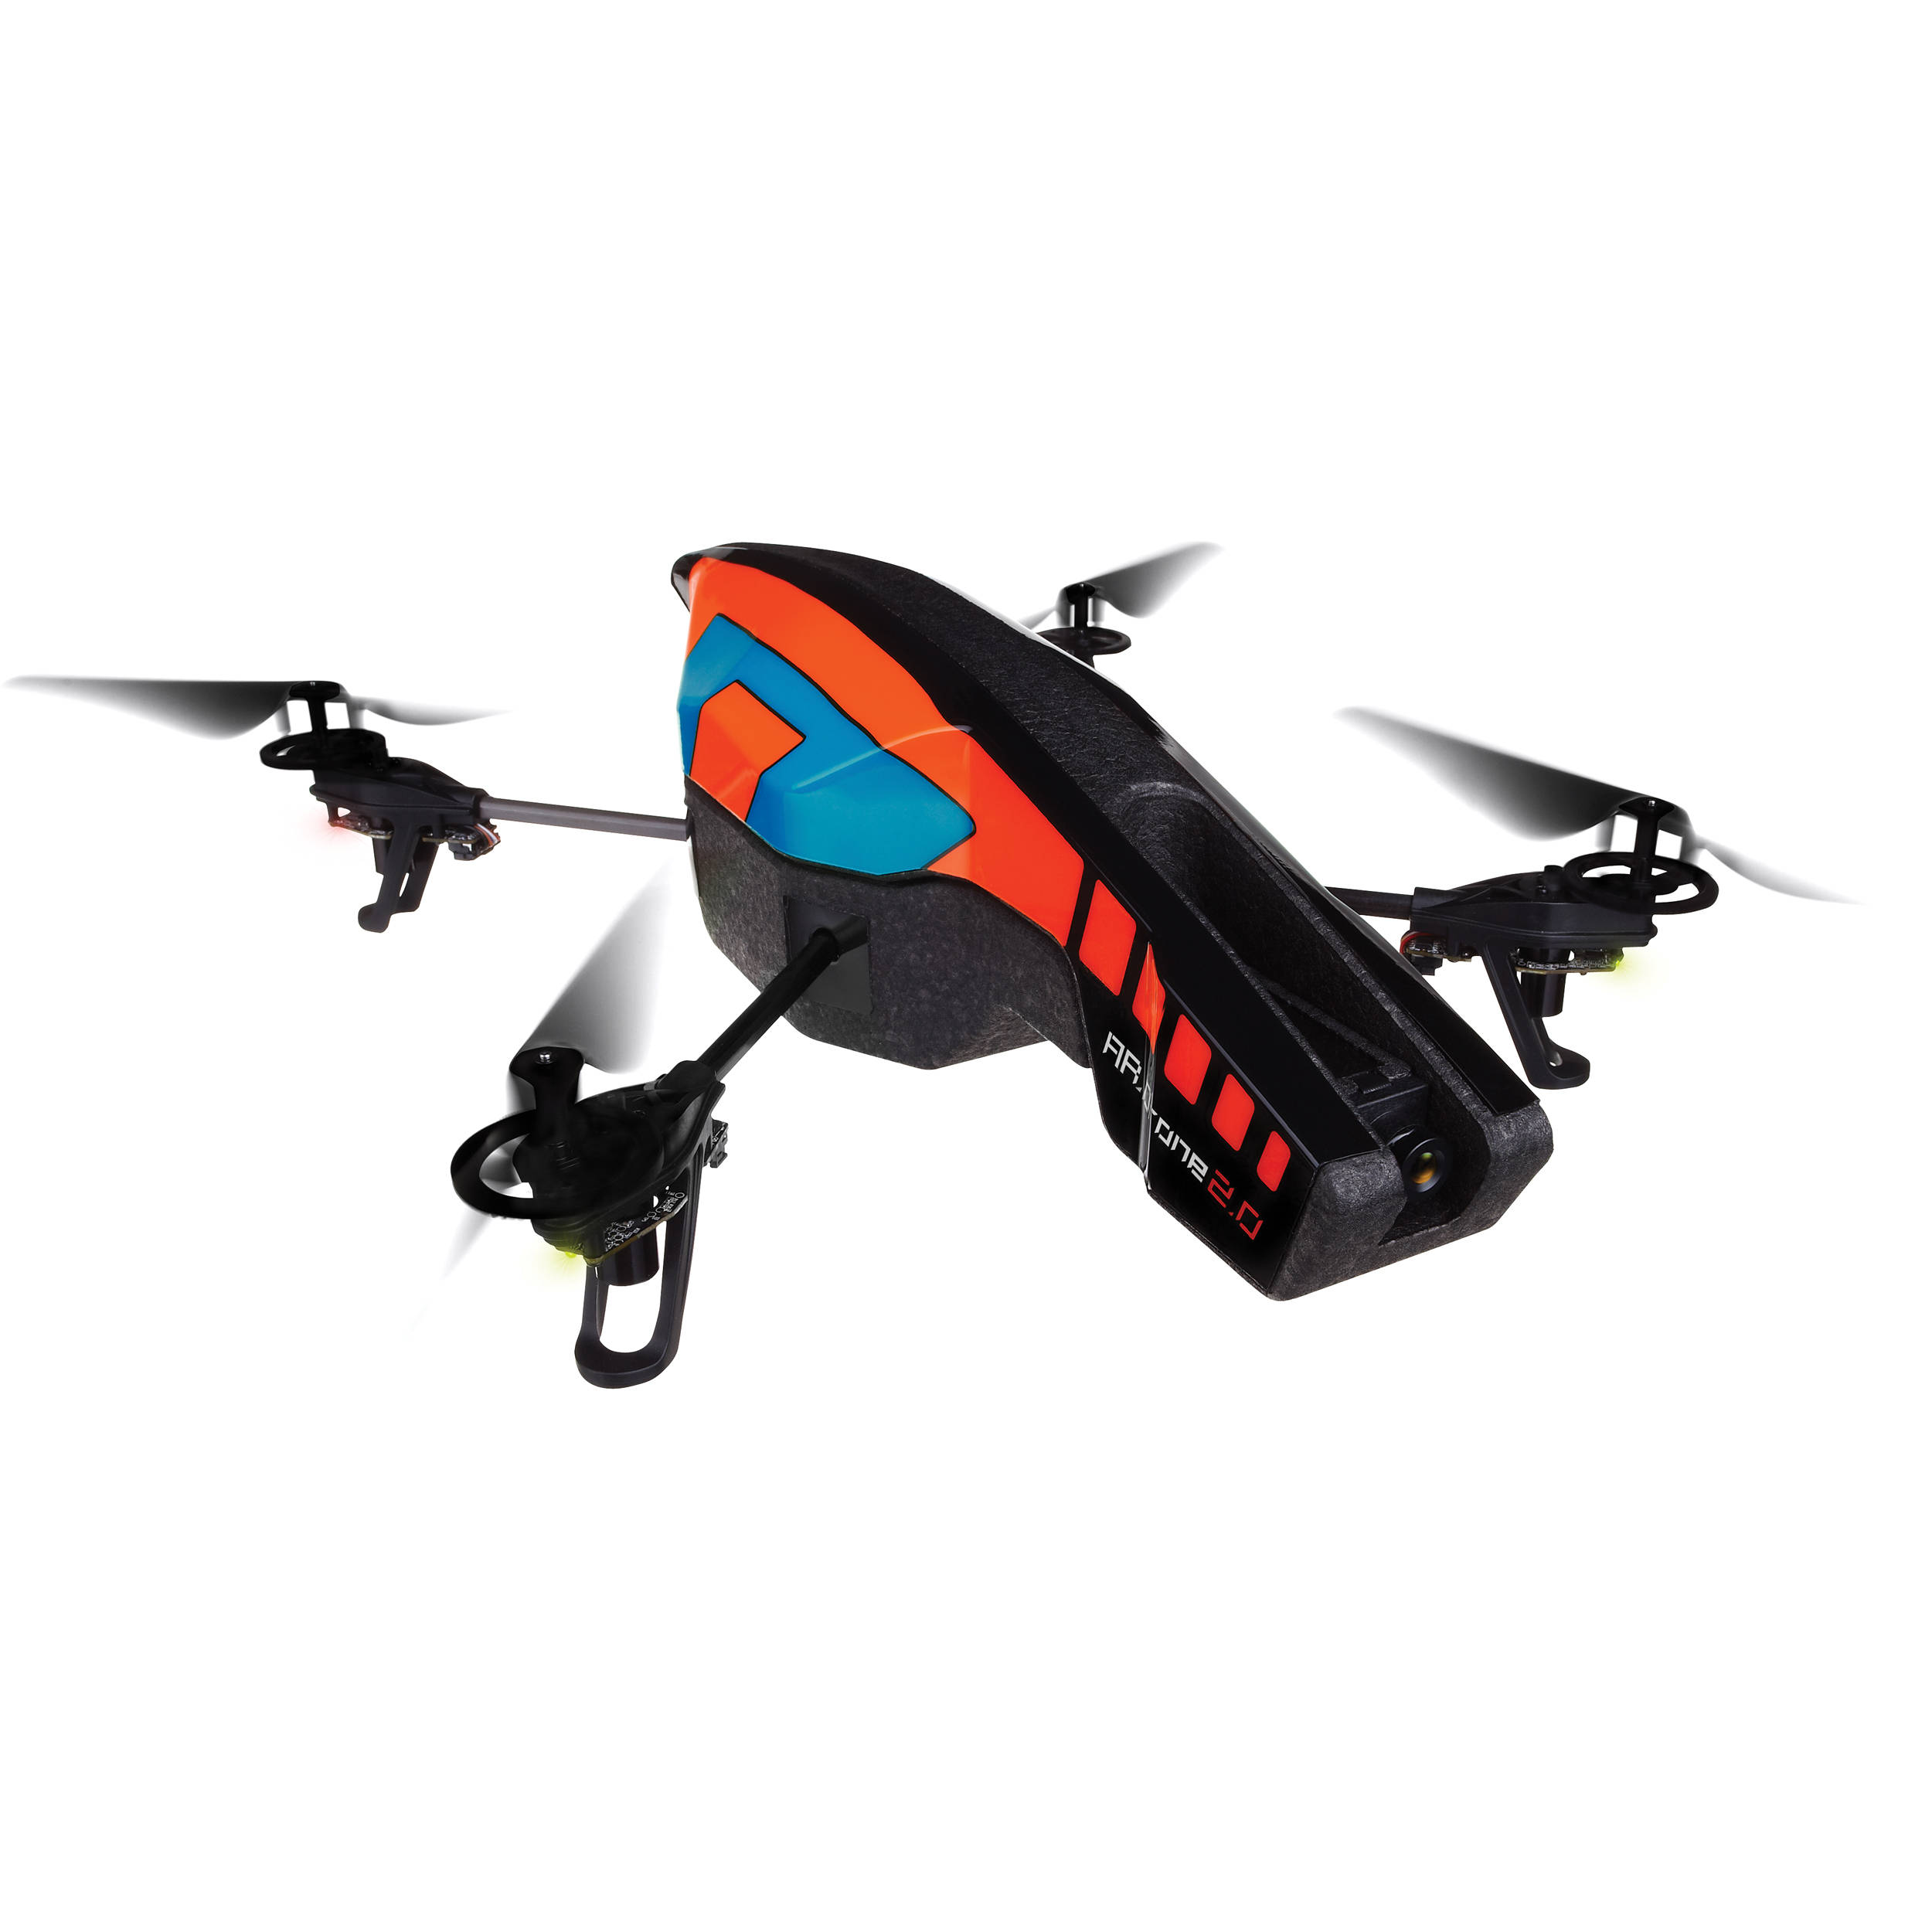 Parrot Ar Drone 2 0 Wifi Antenna - Best Pictures and Model